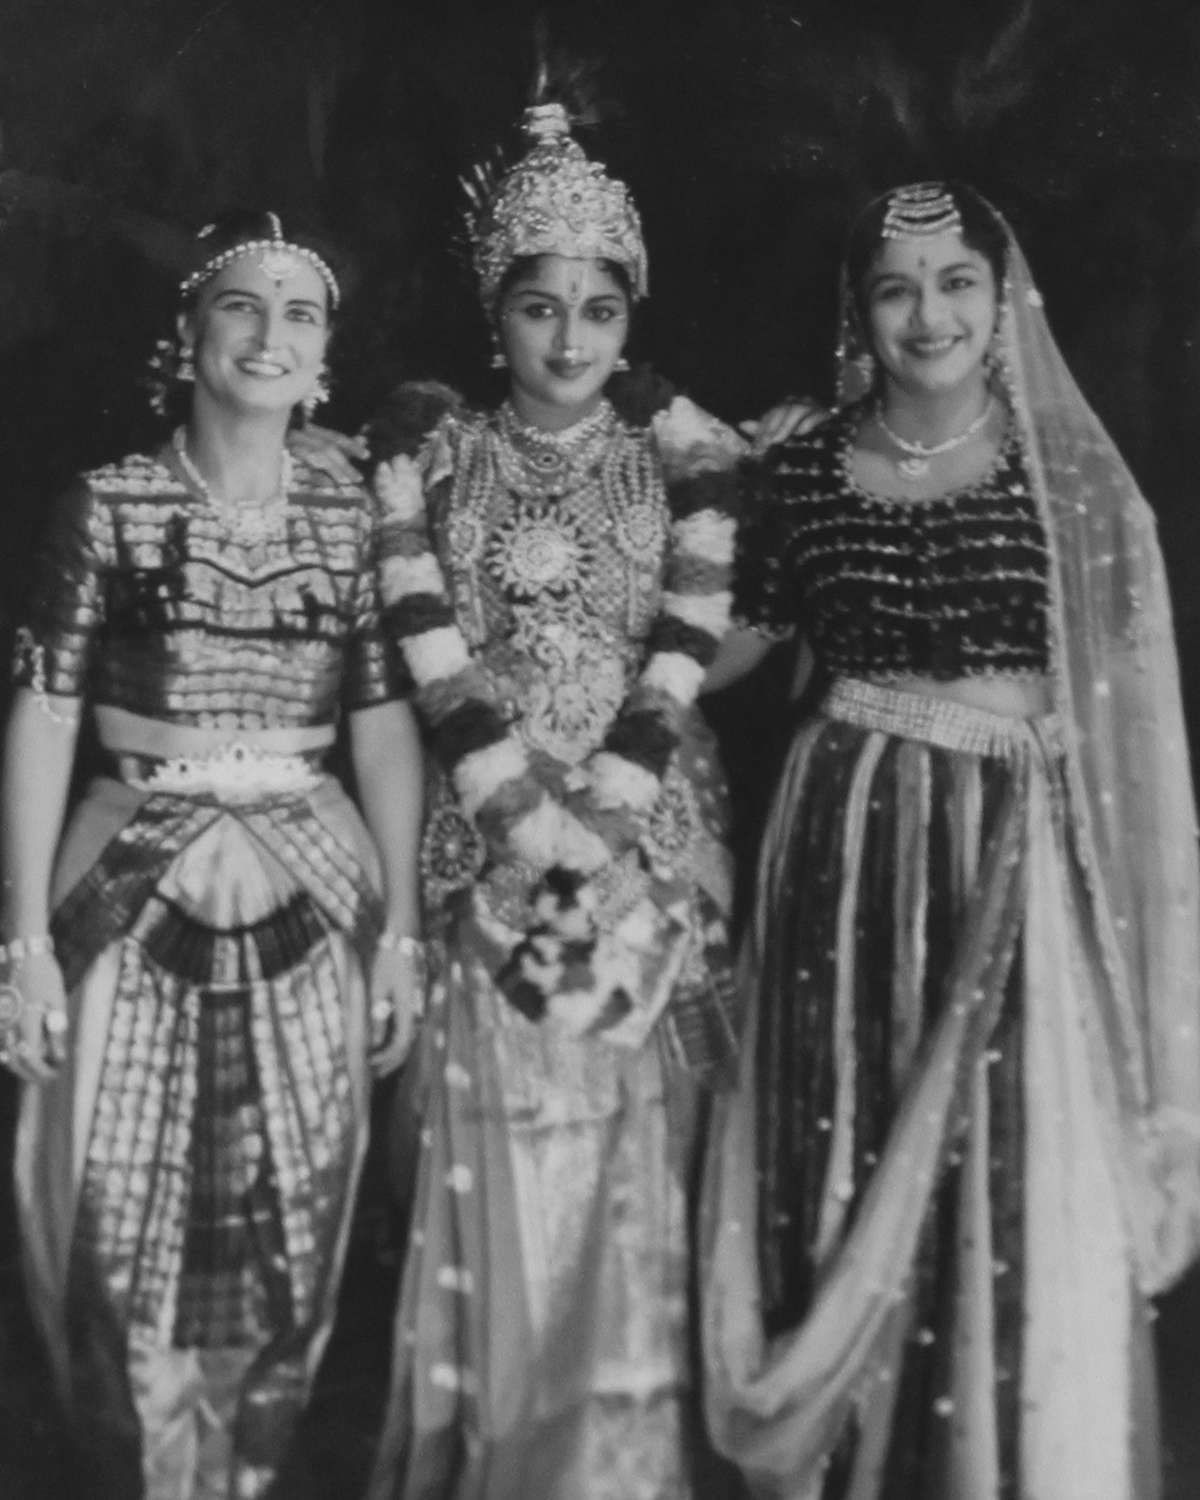 Left to right: my mom with Padmini and Lalitha, two of the three Travancore Sisters. They were hugely popular dancers and film stars, and our next-door neighbors in Chennai. My mother had trained as a ballet dancer, and took up Bharatanatyam, getting good enough to do a performance with them. More Travancore Sisters pictures are on my blog. Photo credit: Woodman Family Collection